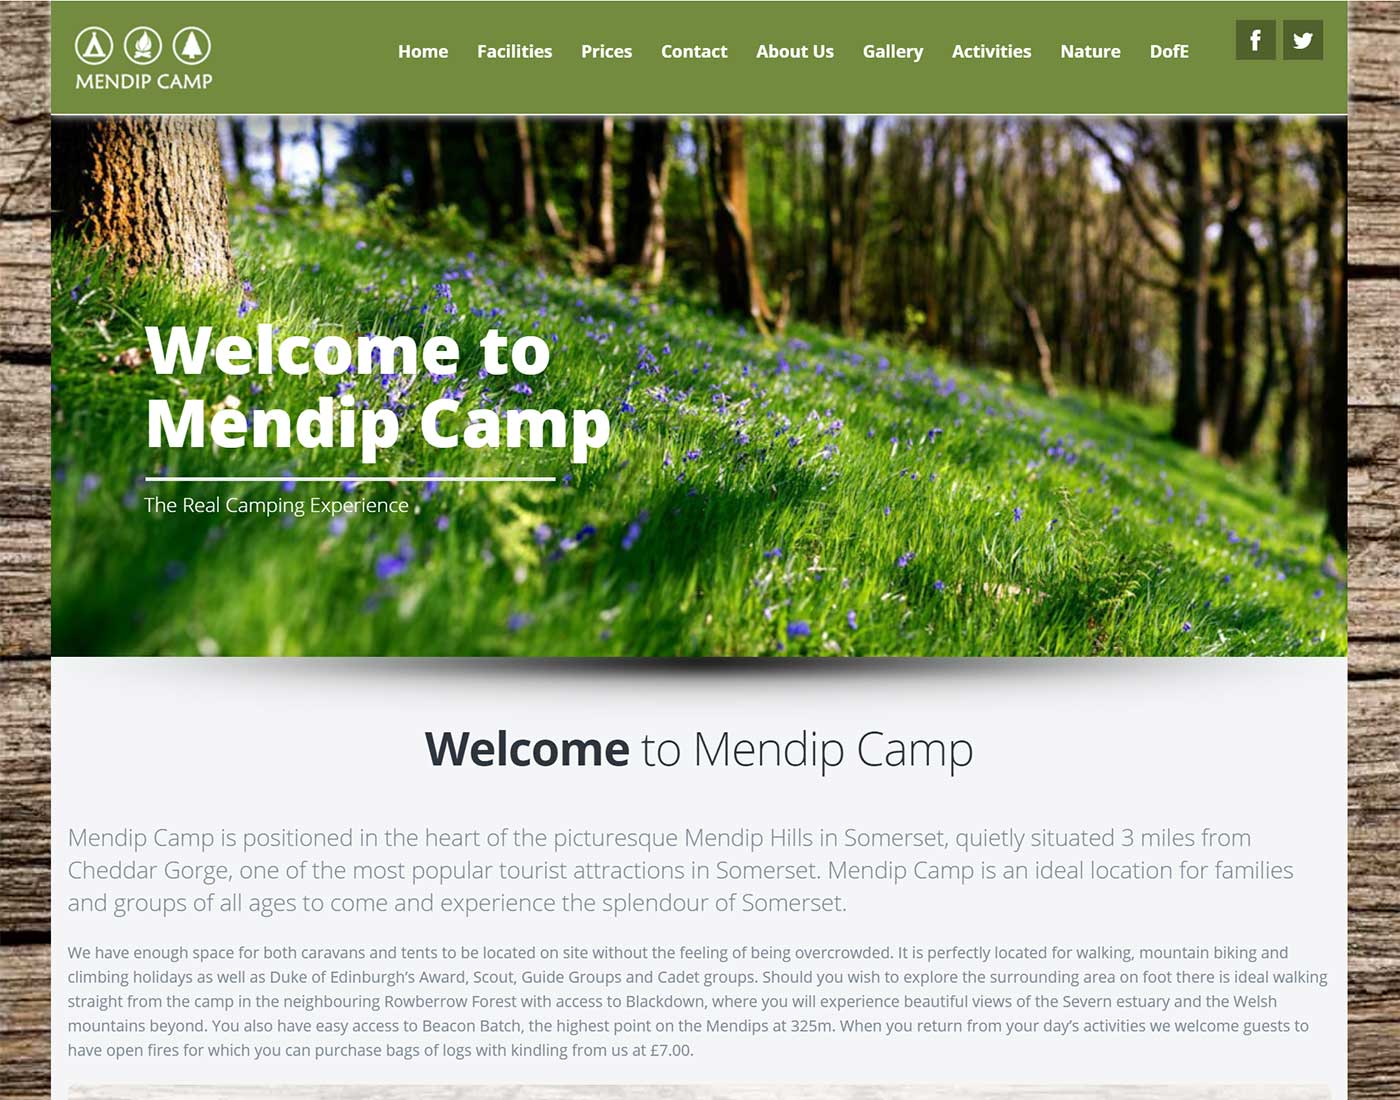 Mendip Camp - Case Study